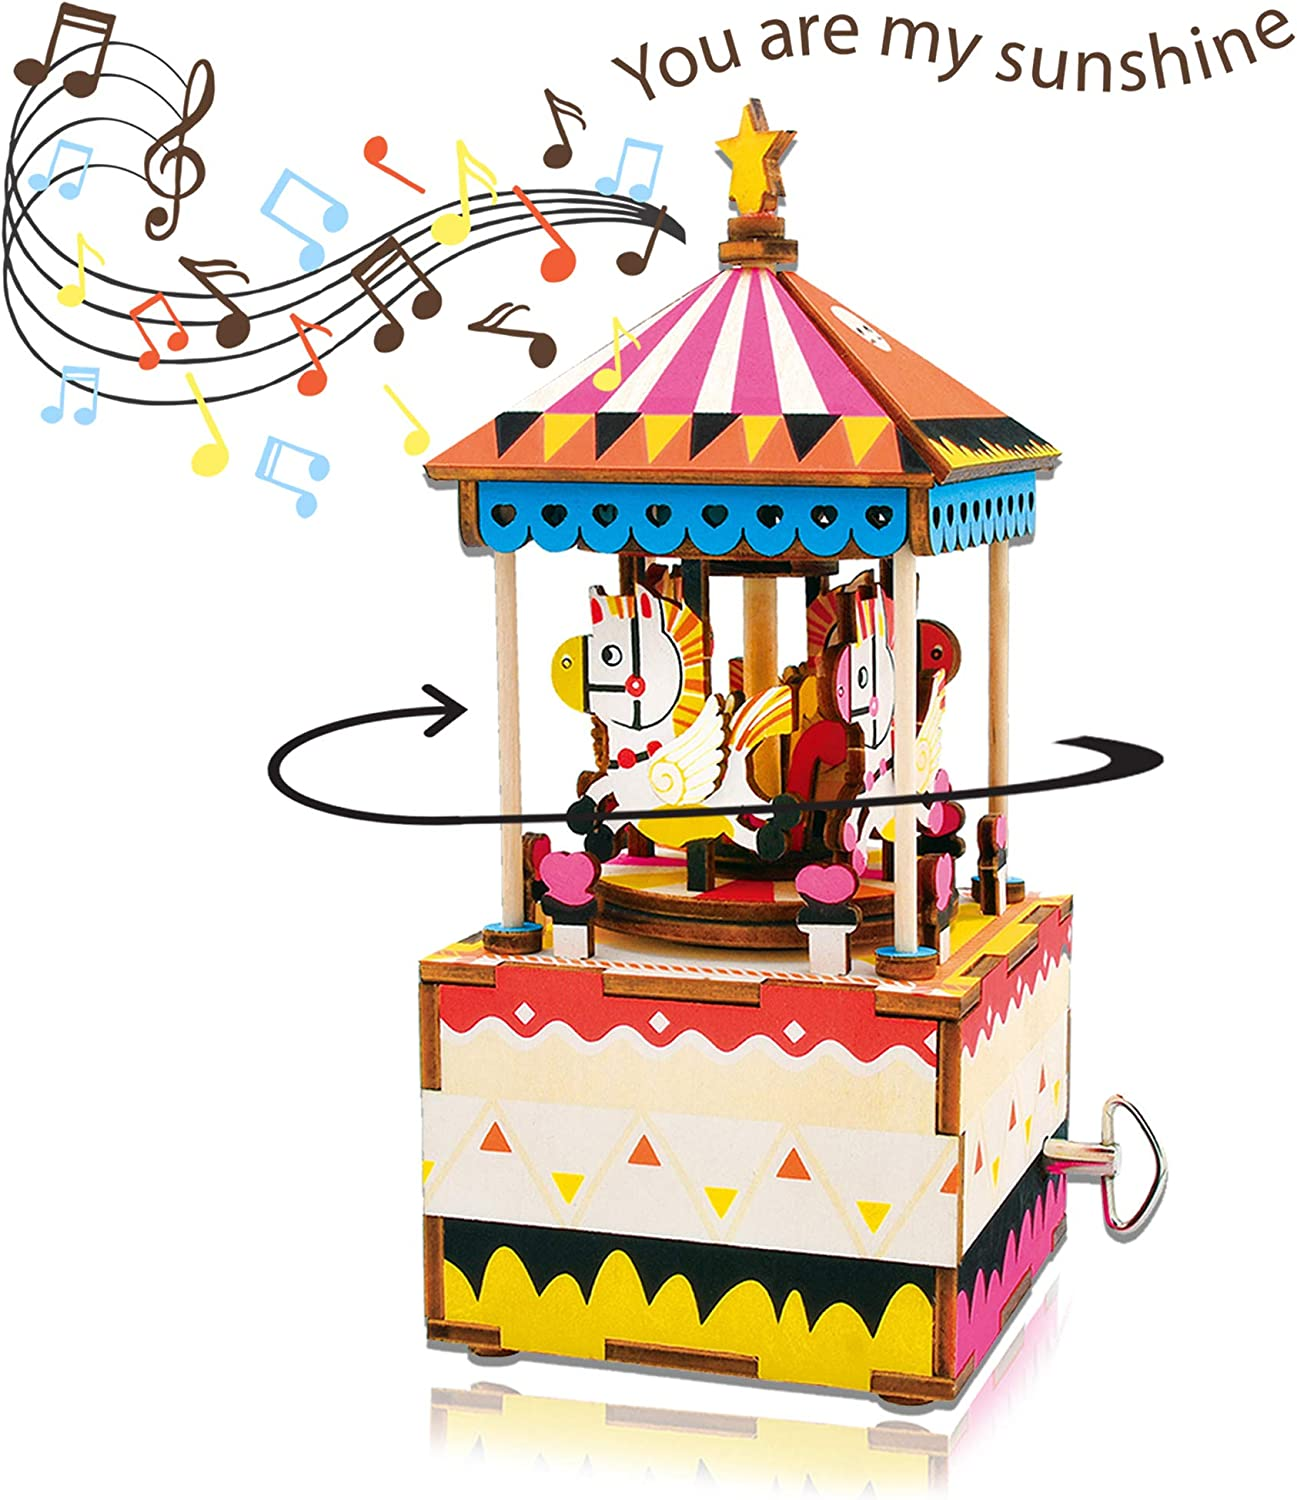 Merry Go Round Wooden Model Kit Carousel Laser Cut Puzzle Robotime Craft DIY Toy Fun Fair Carnival